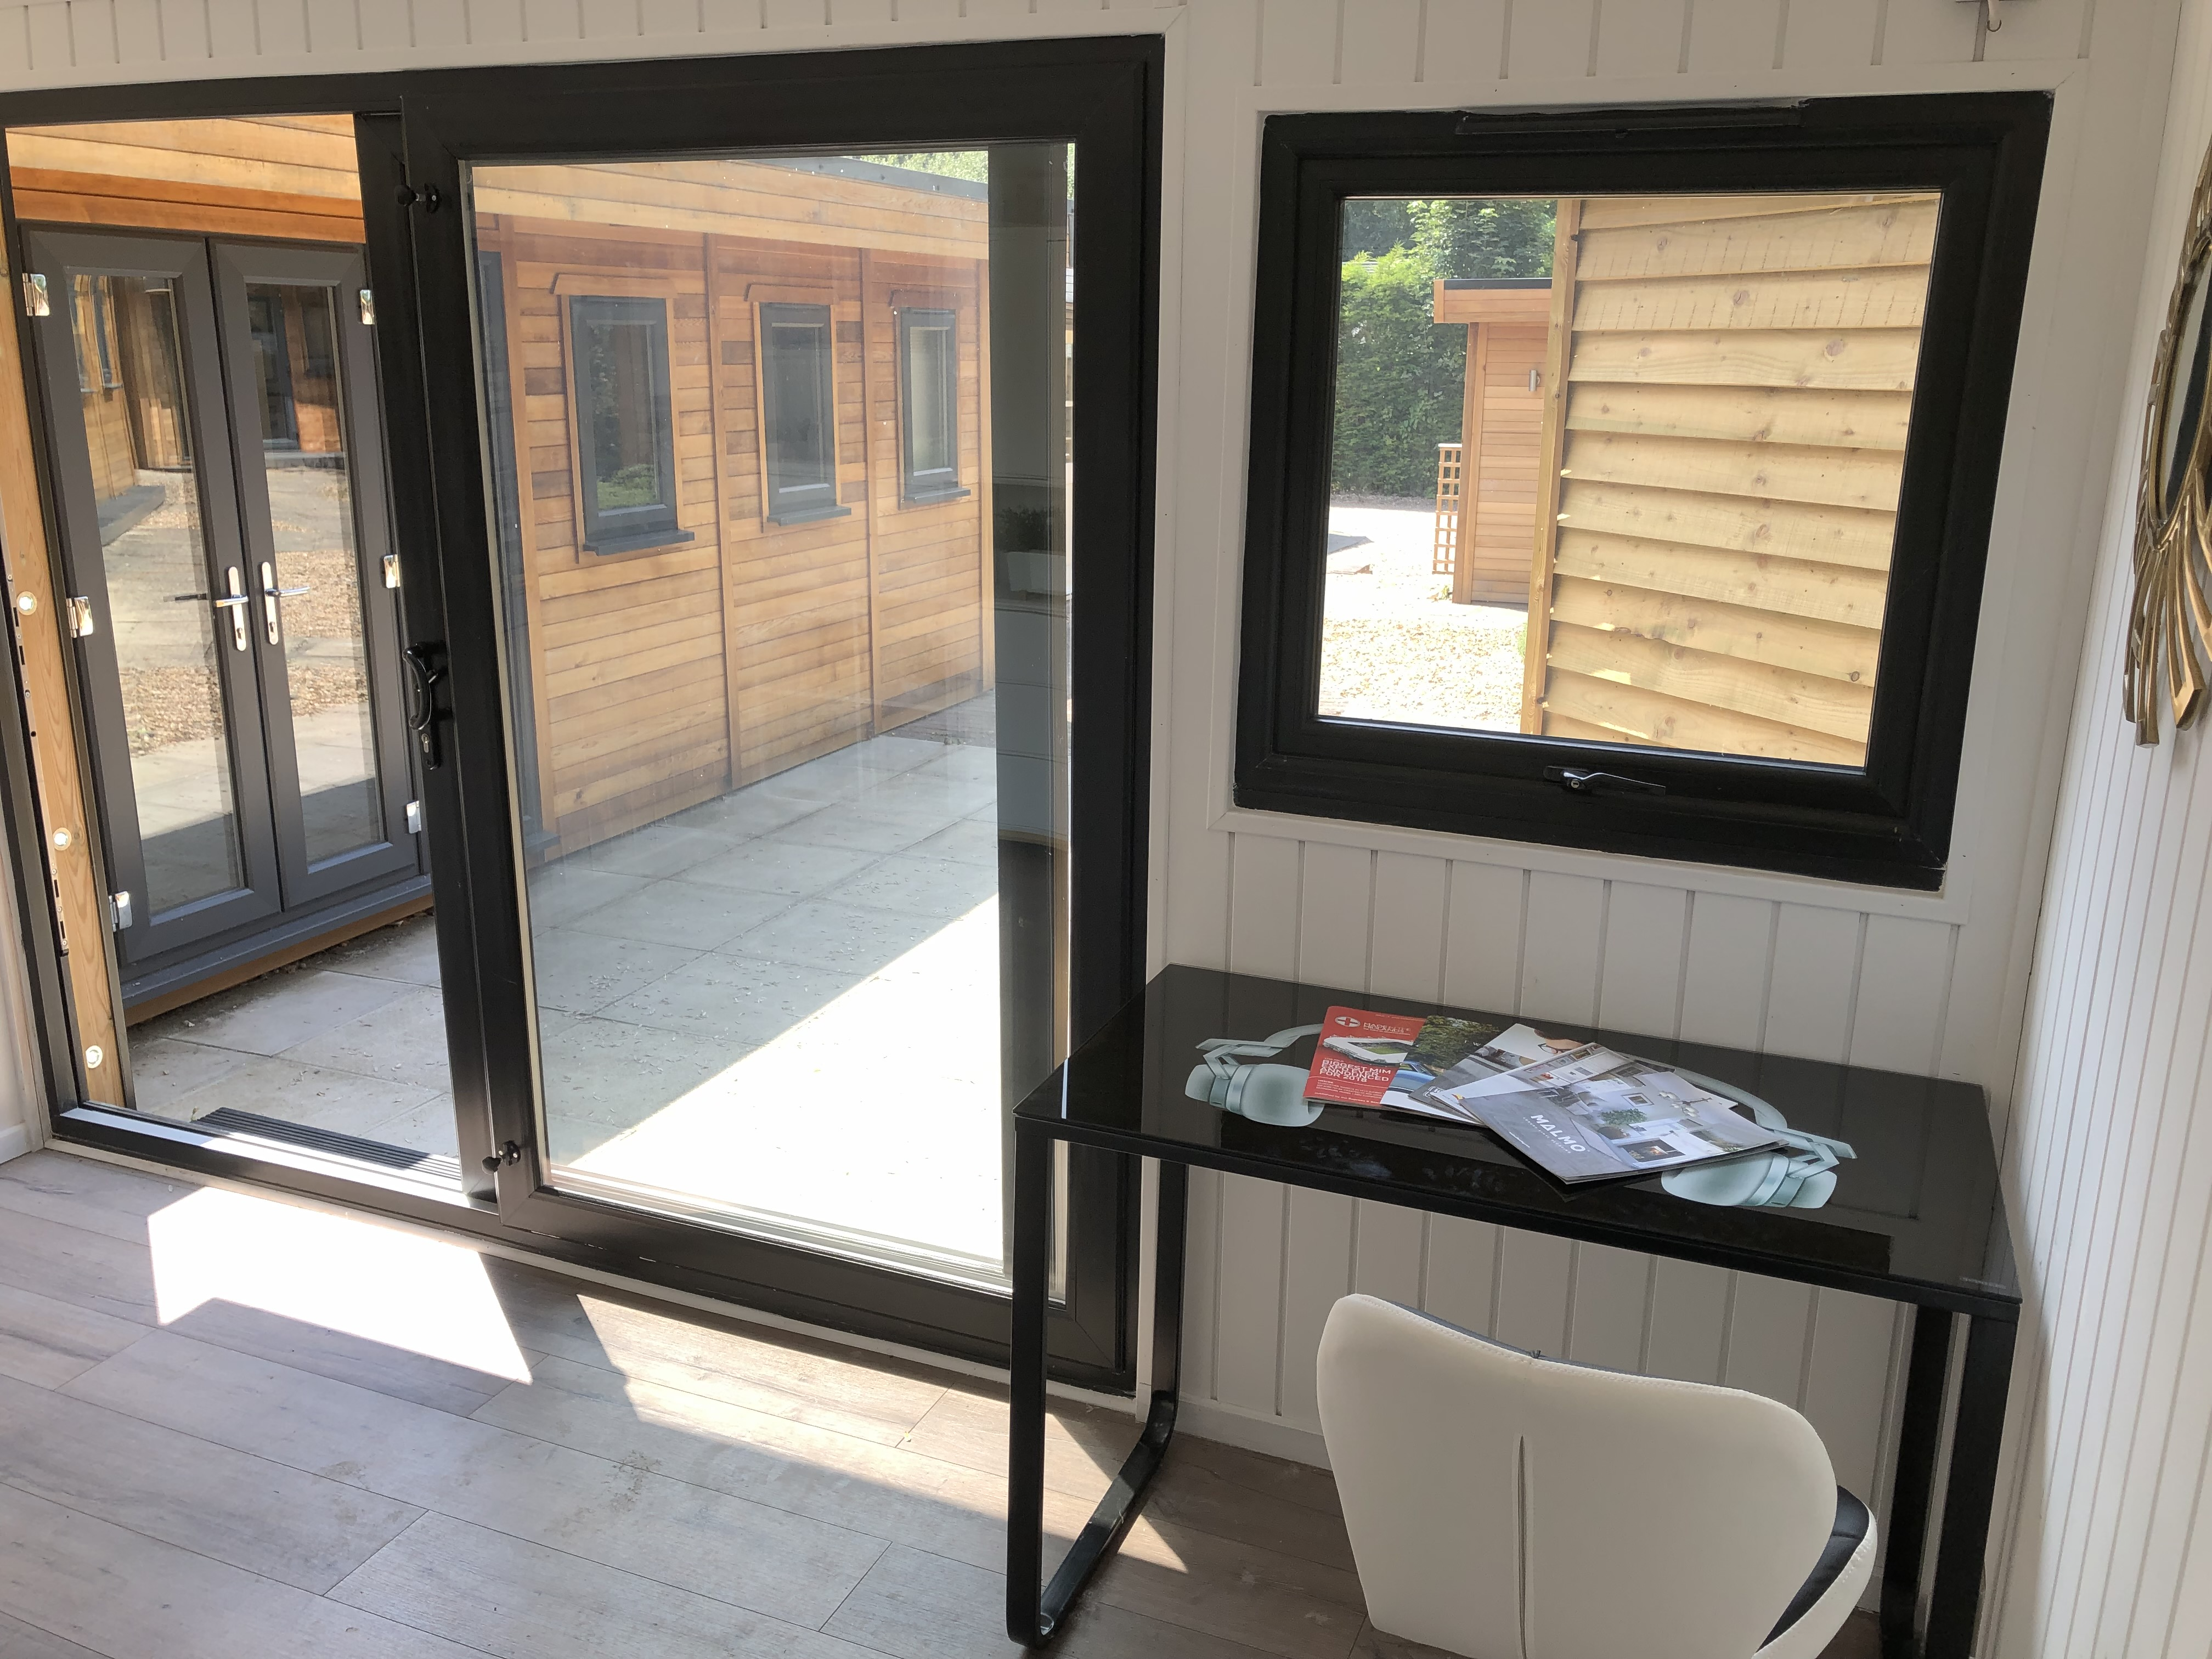 Top uses for a Garden Room